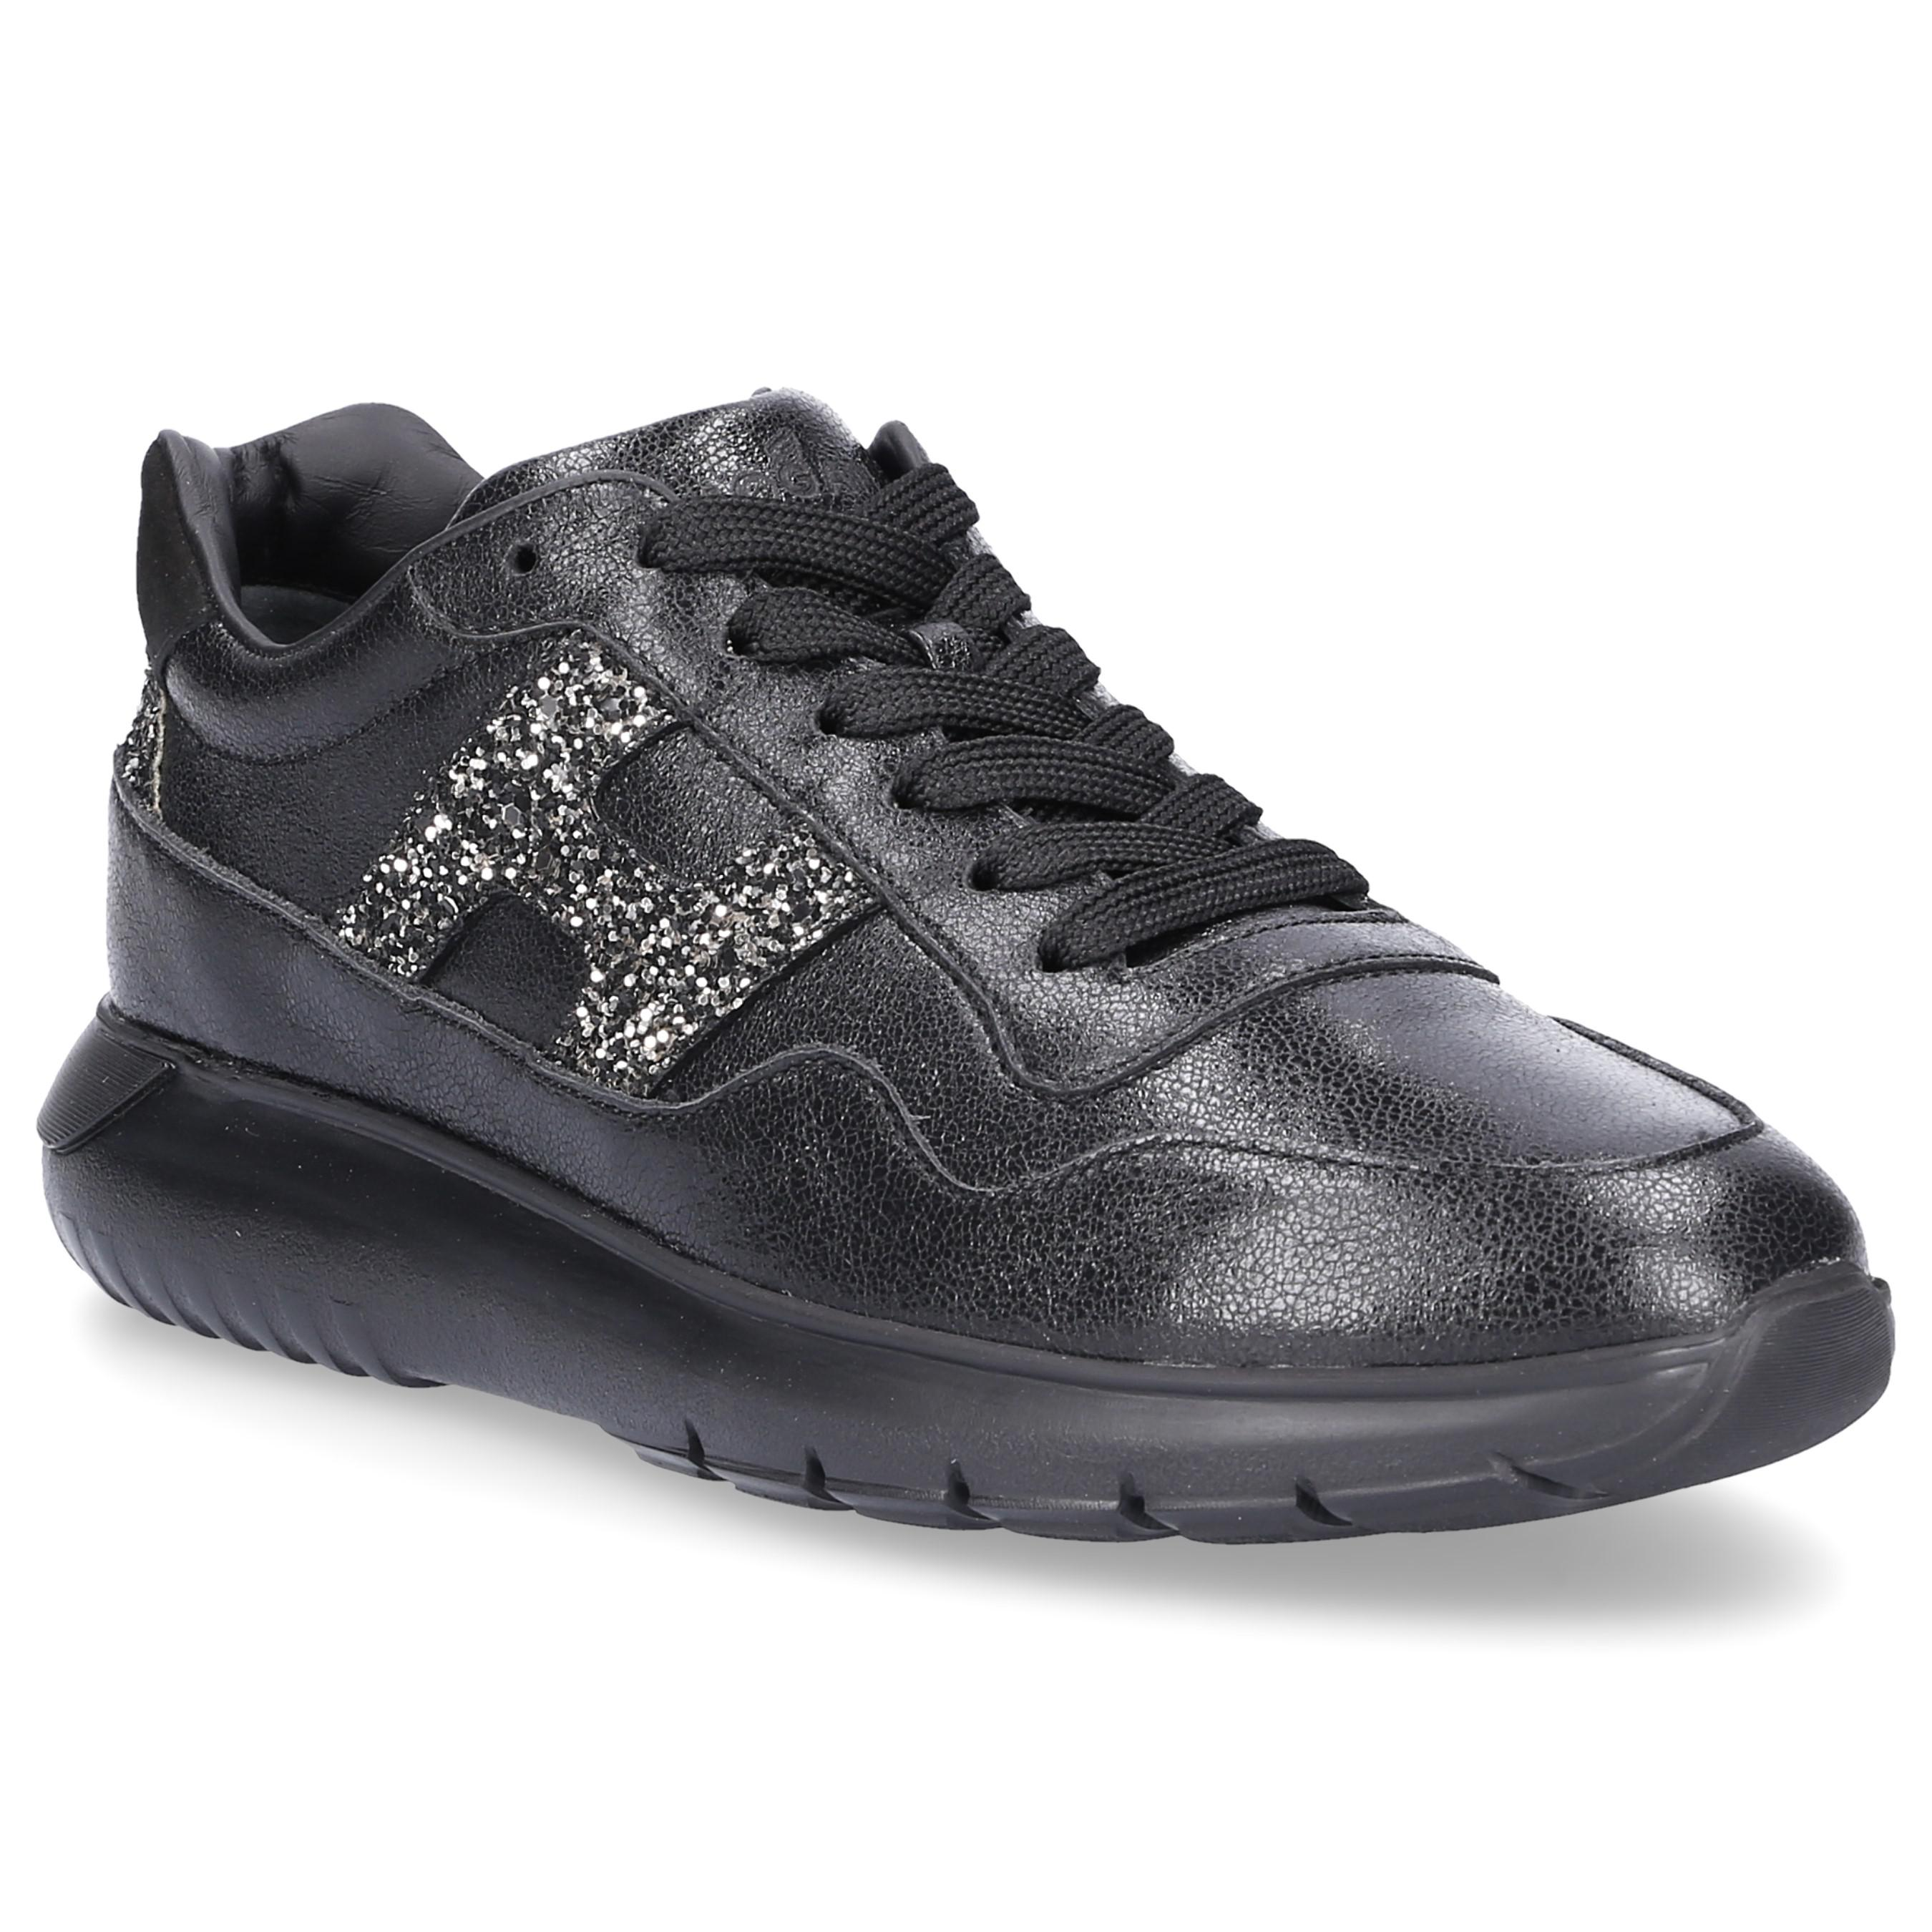 Sneaker smooth leather suede Glitter Logo black Hogan Clearance Ebay Clearance Fast Delivery LNpz7G